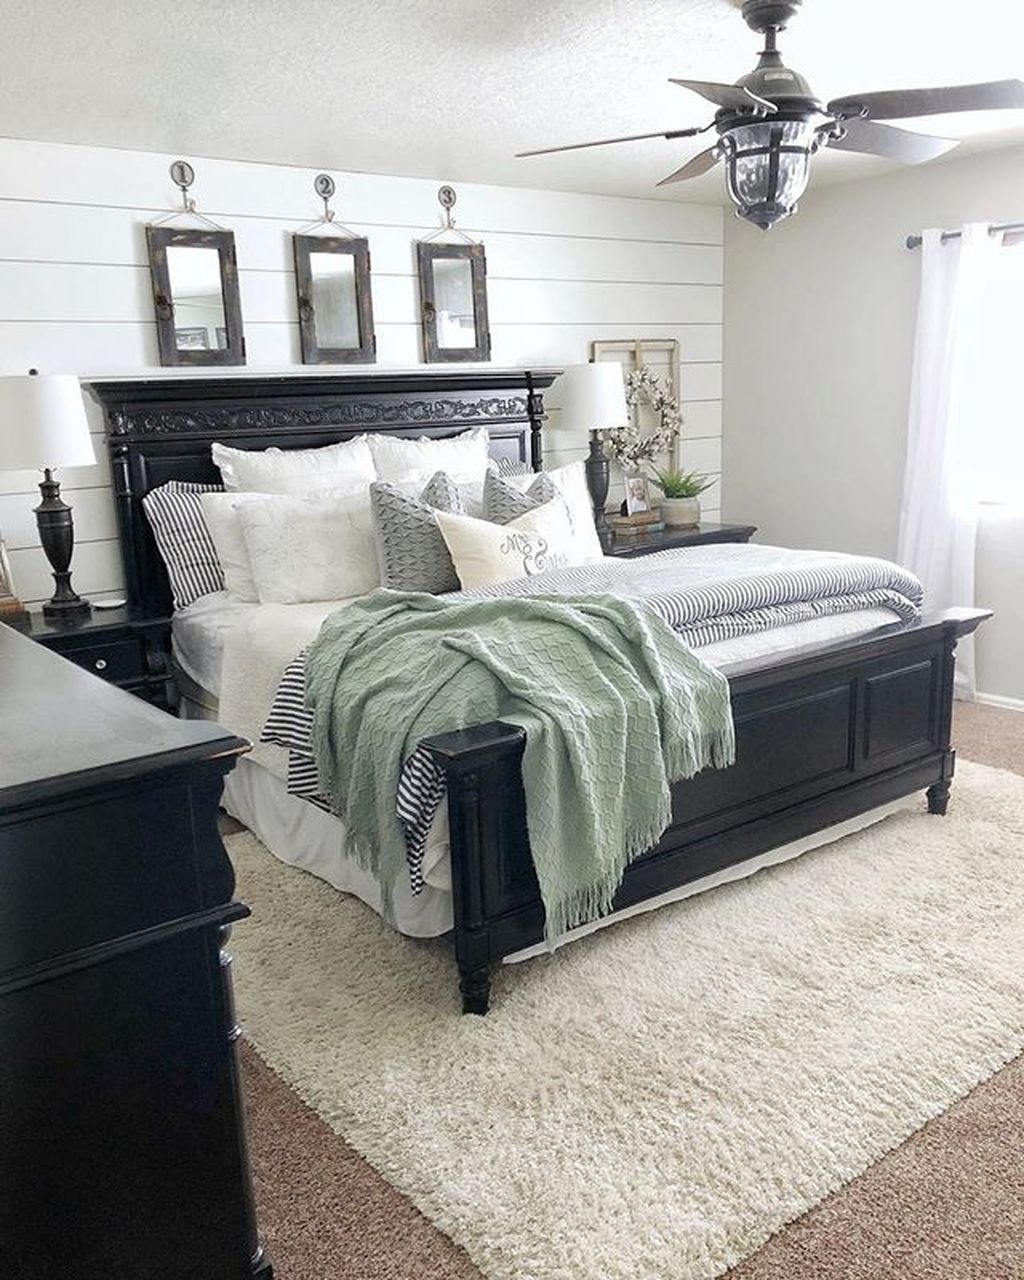 Vintage Farmhouse Bedroom Decor Ideas On A Budget To Try 02